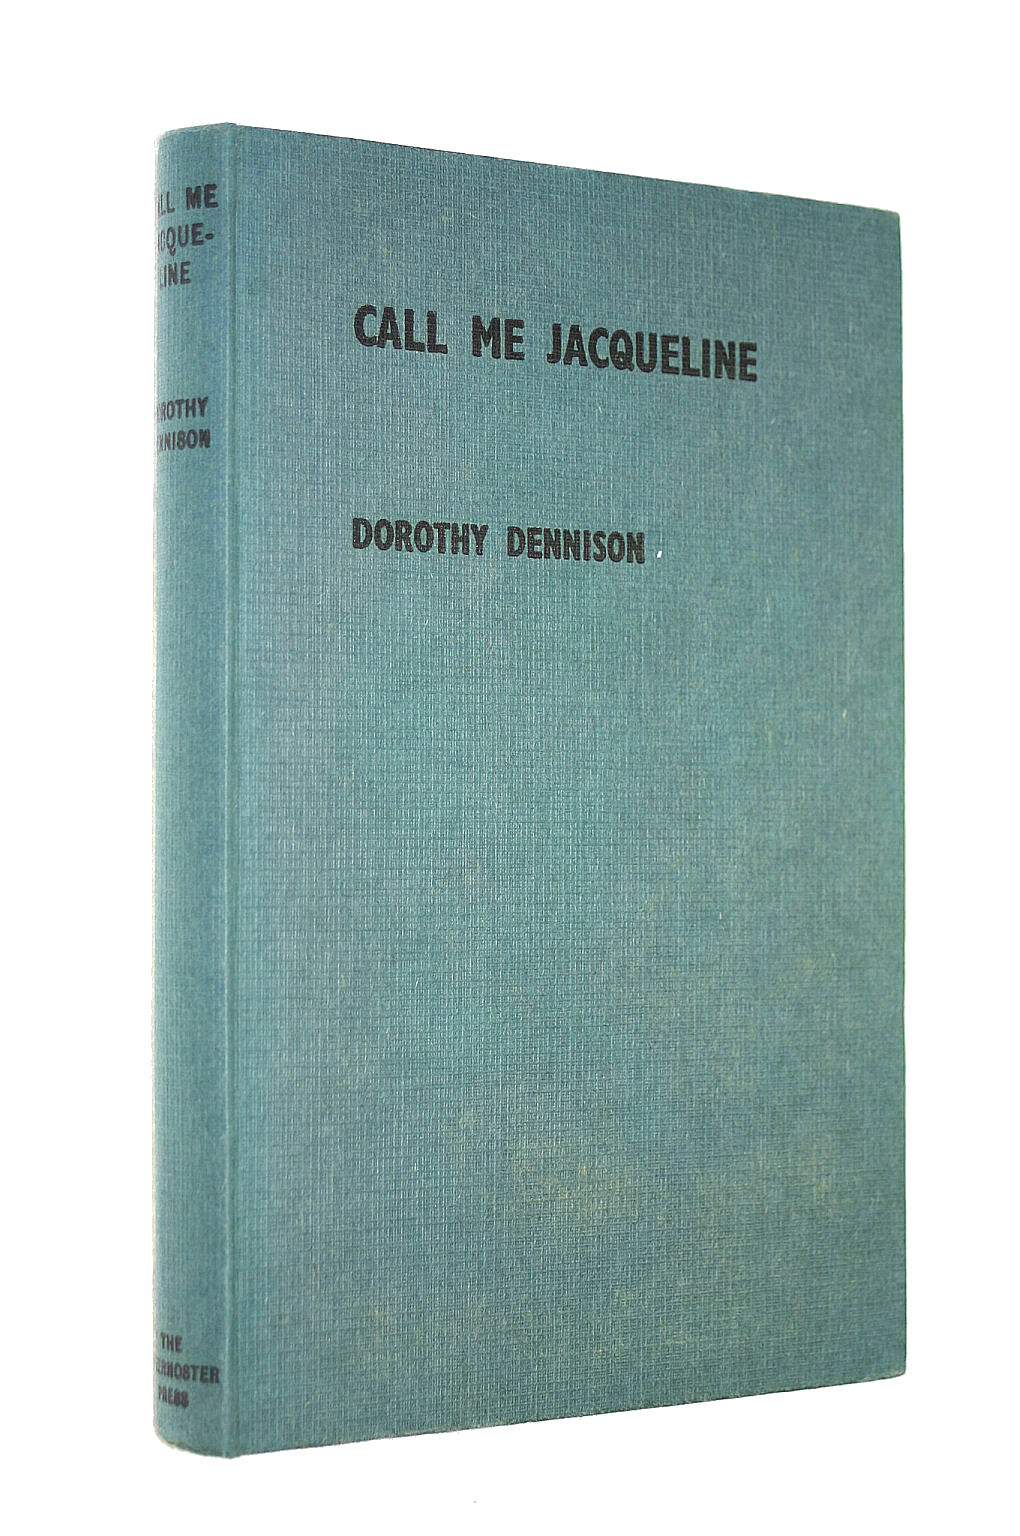 Image for Call me Jacqueline